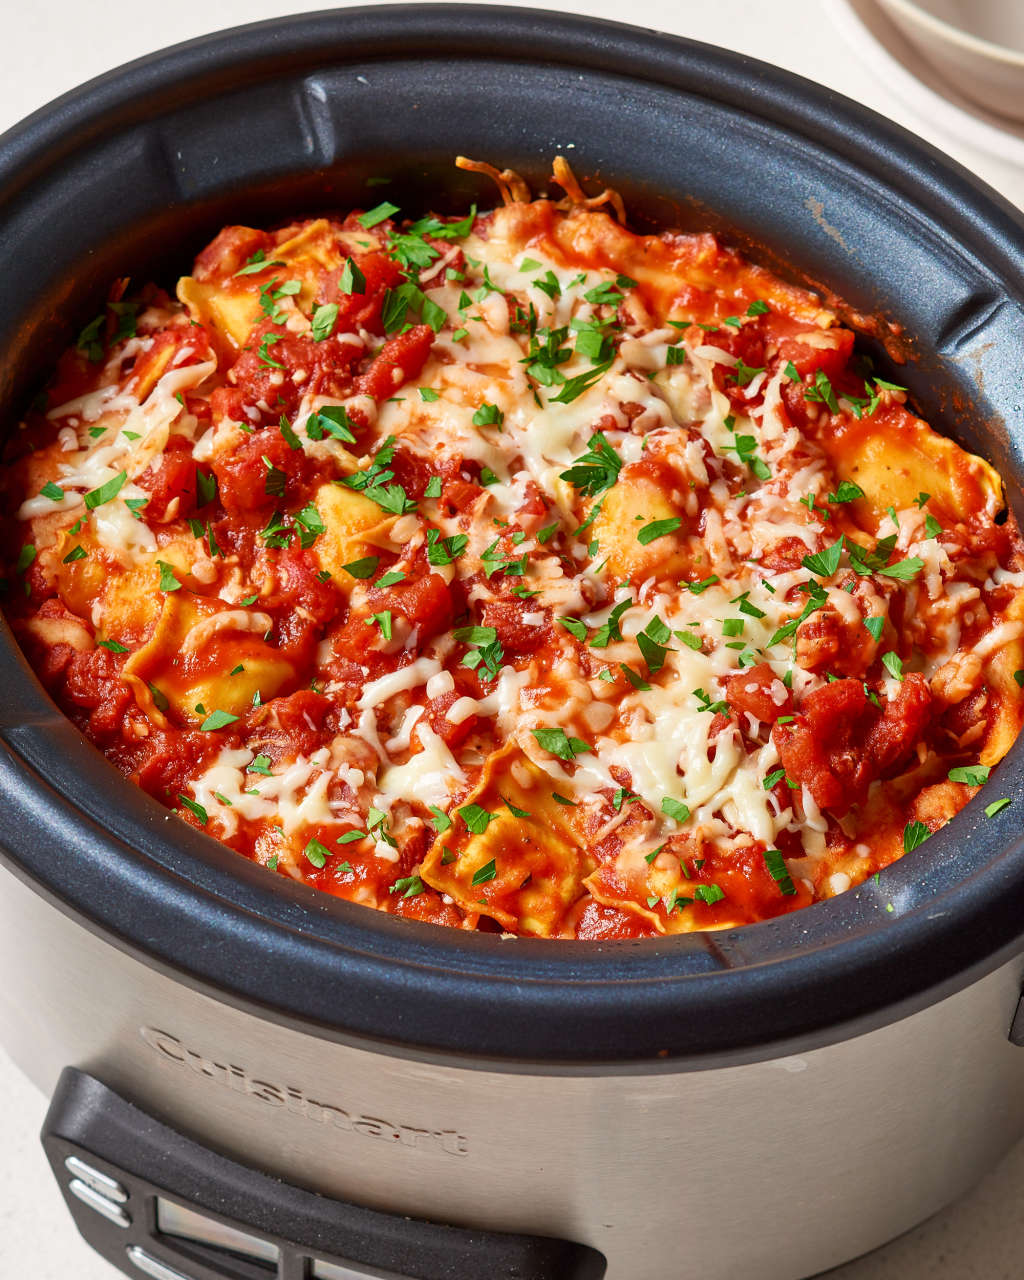 Slow Cooker Dinners: 10 Vegetarian Meals From The Slow Cooker